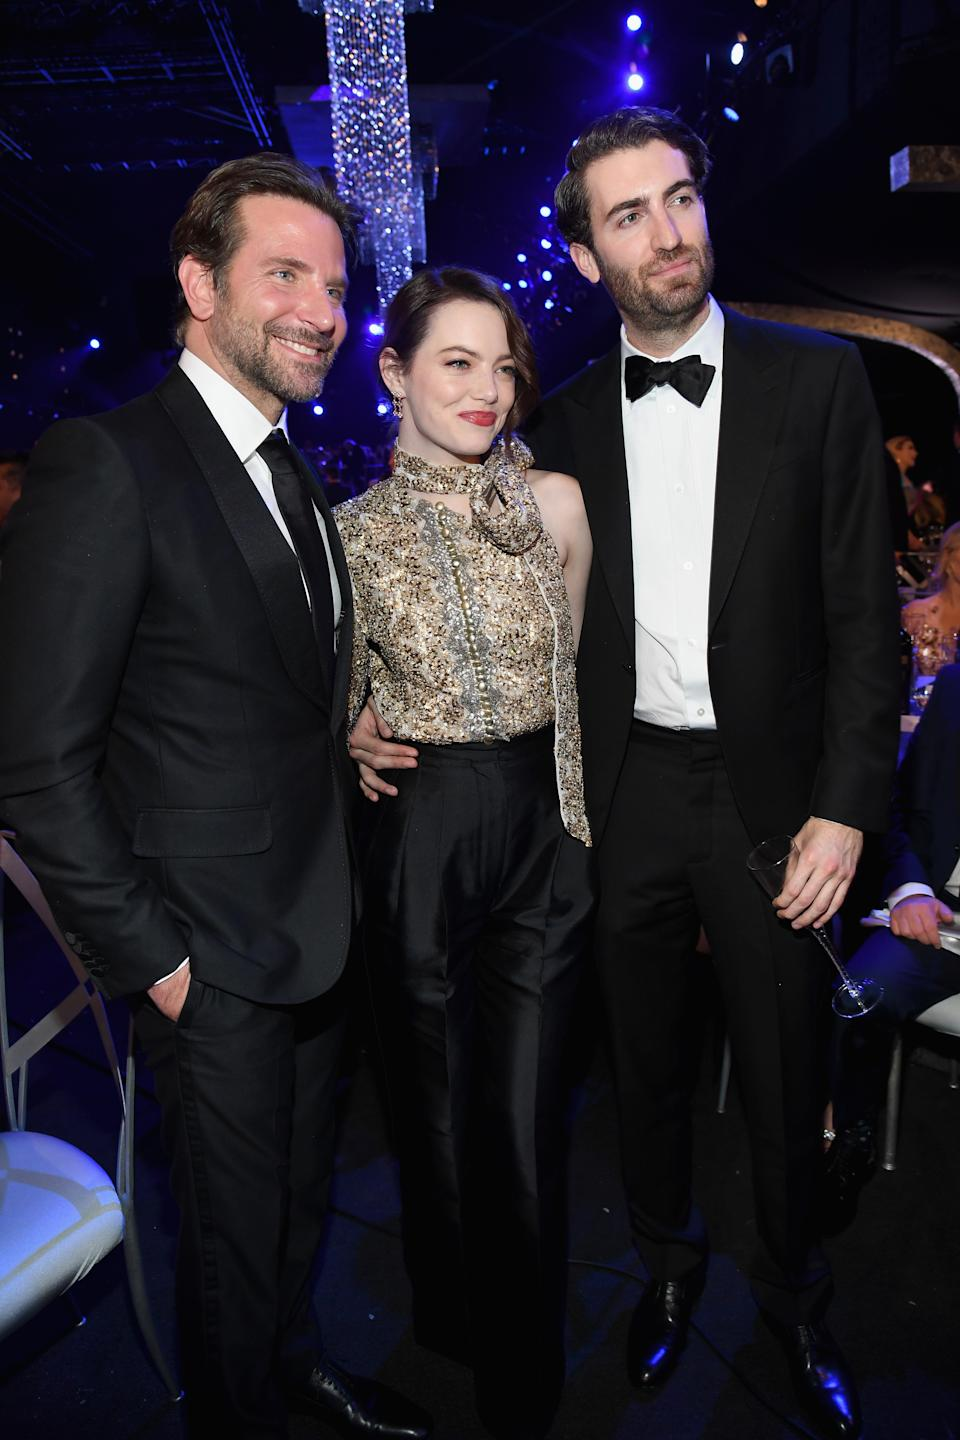 From left, Bradley Cooper, Emma Stone and Dave McCary pictured during the 25th Annual Screen ActorsGuild Awards in January 2019. [Photo: Getty]